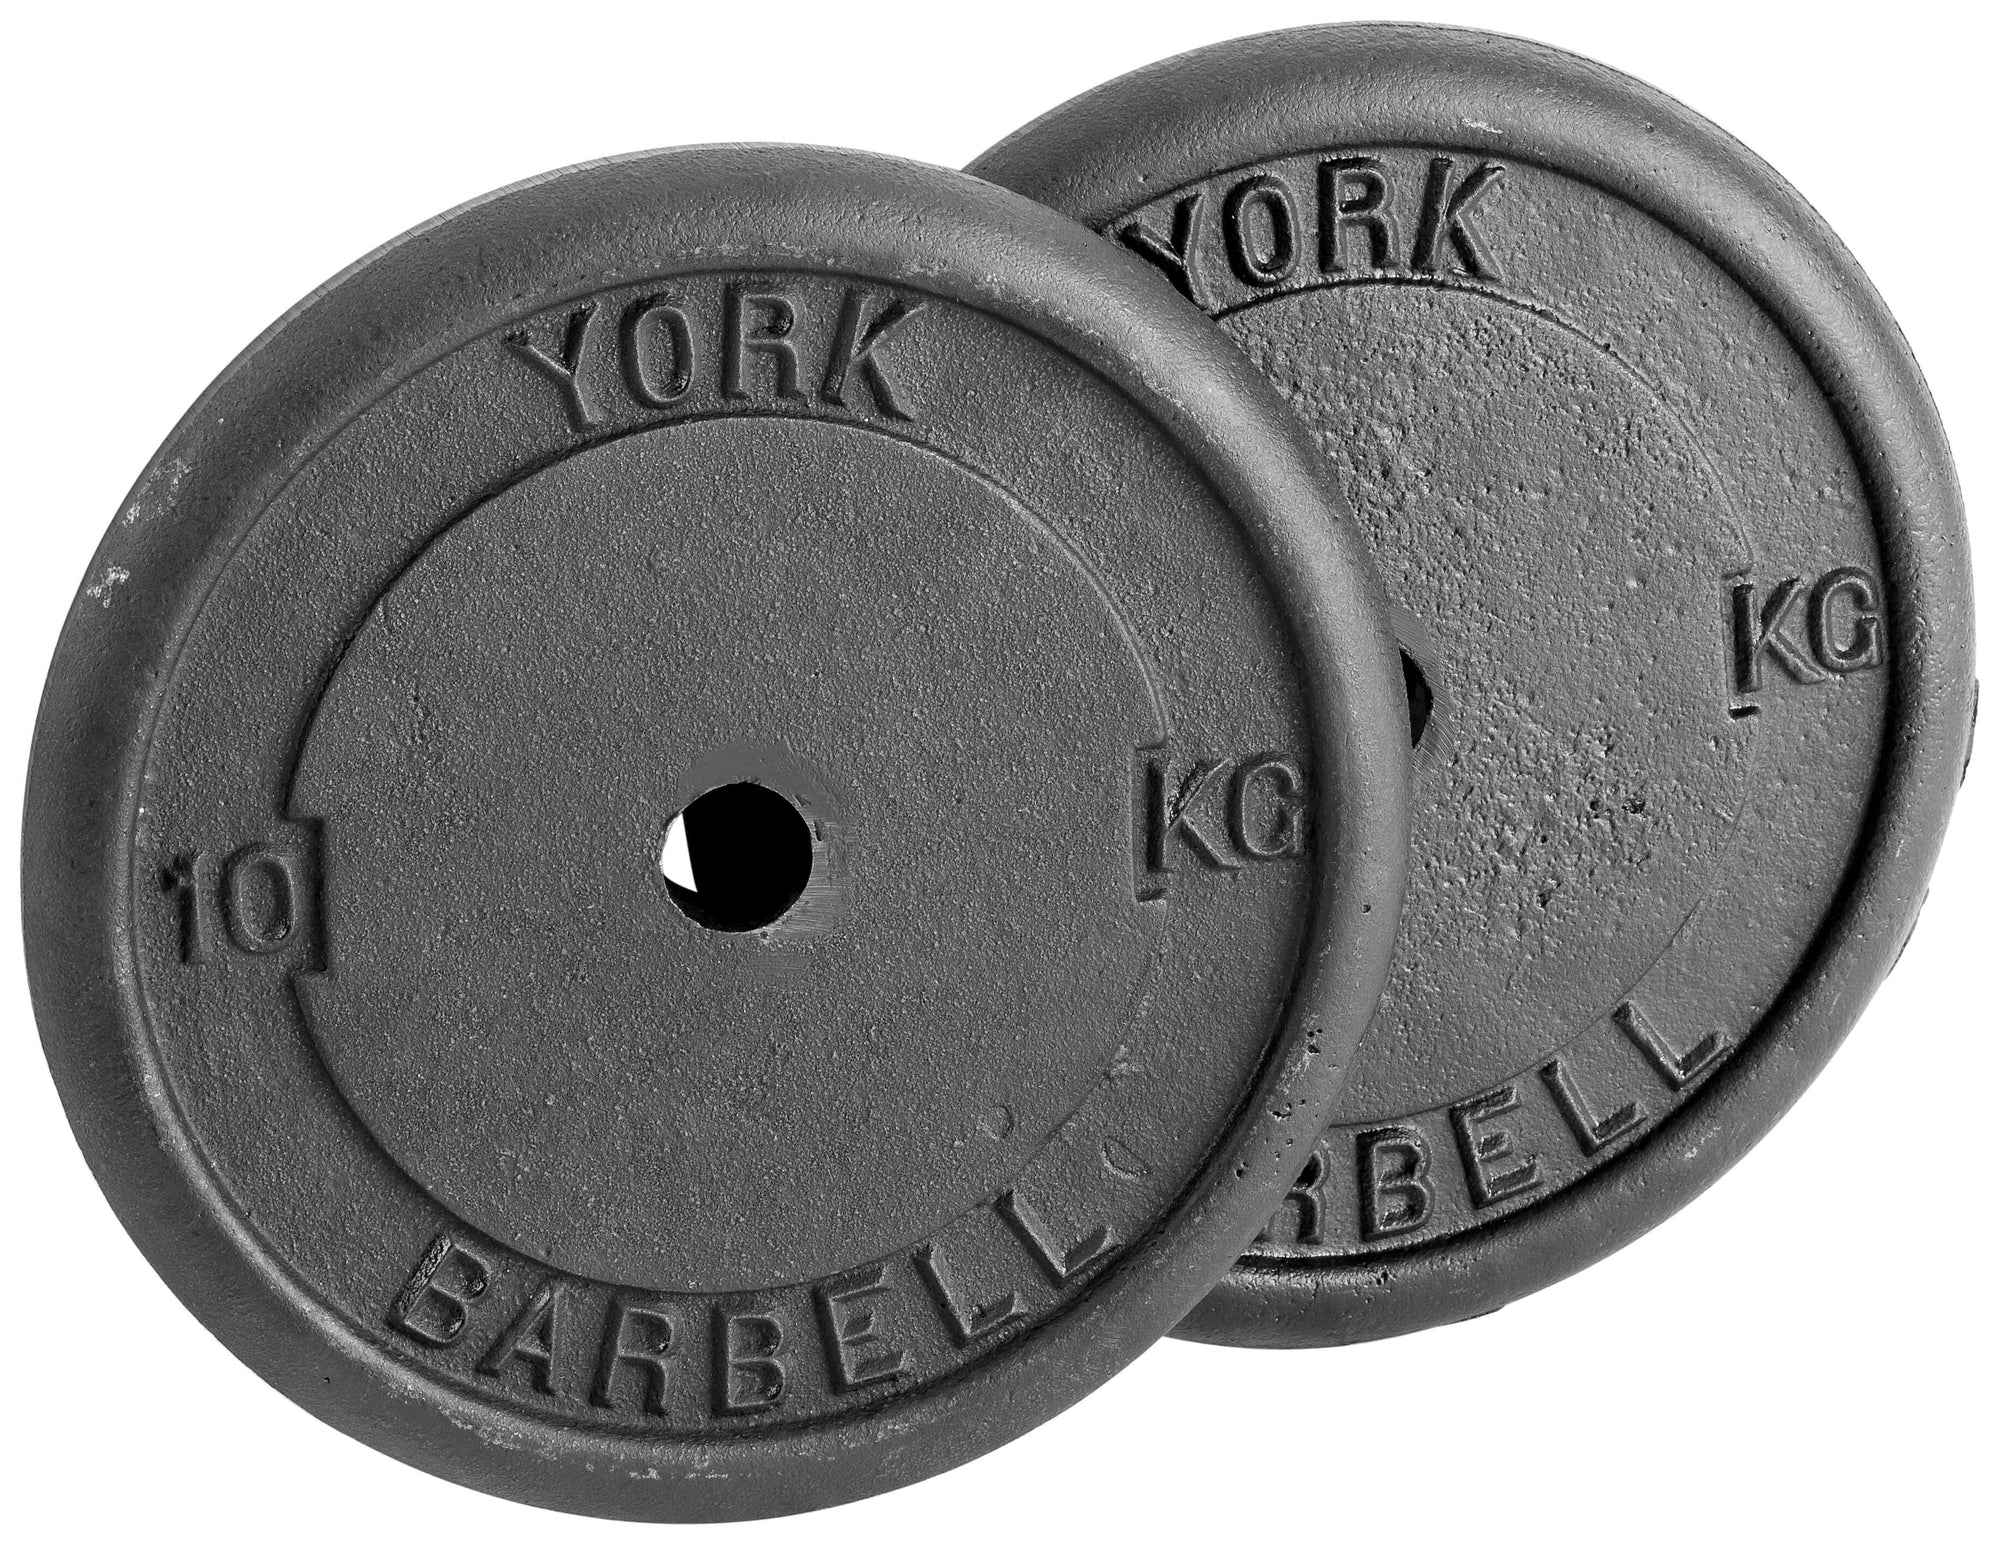 York 10kg Cast Iron Disc (Sold Individually)